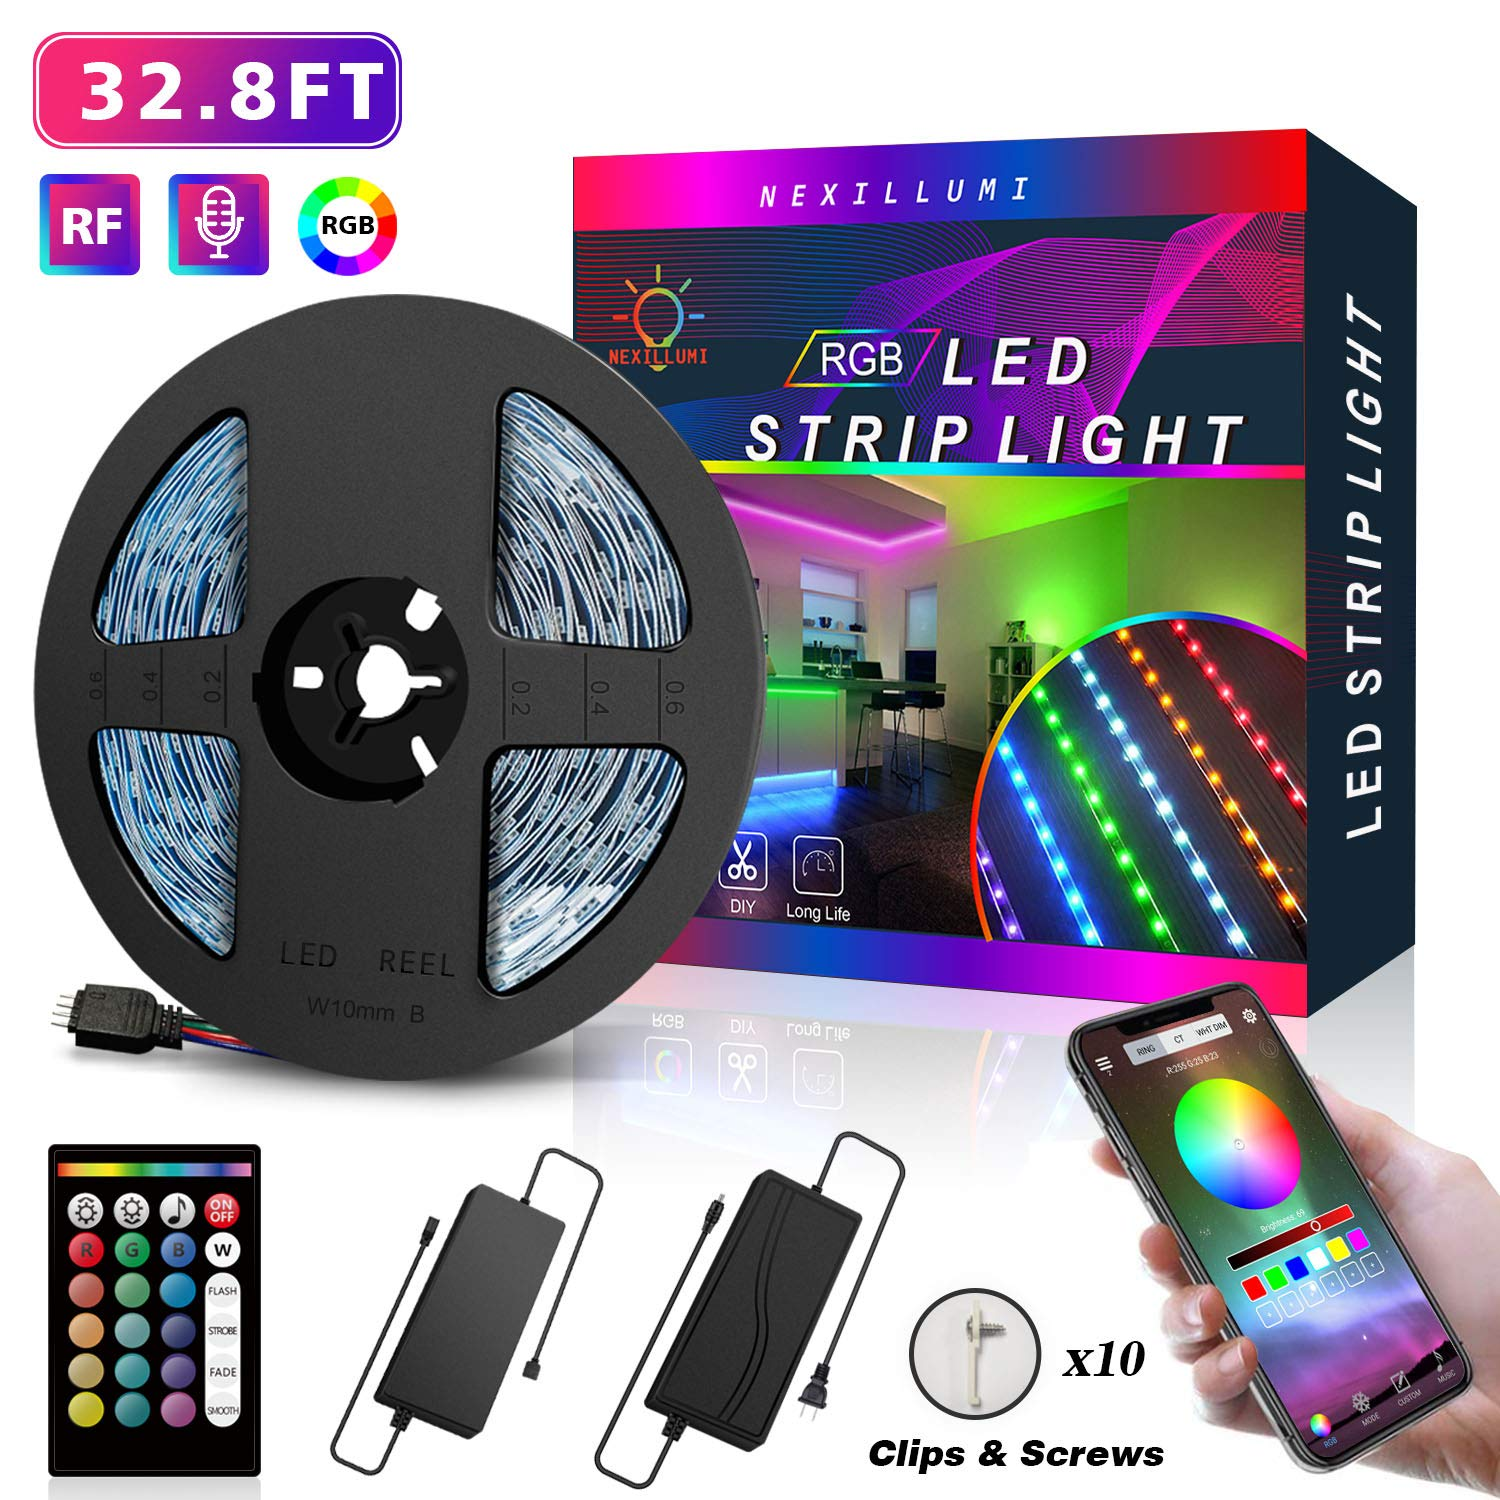 LED Strip Lights 32.8 Foot/10M, APP Control Color Changing LED Strip Lights 32.8ft SMD 5050 RGB Light Strips with RF Remote, Sync to Music for Rooms, Bedroom, Party and Interior Decoration (32.8ft)